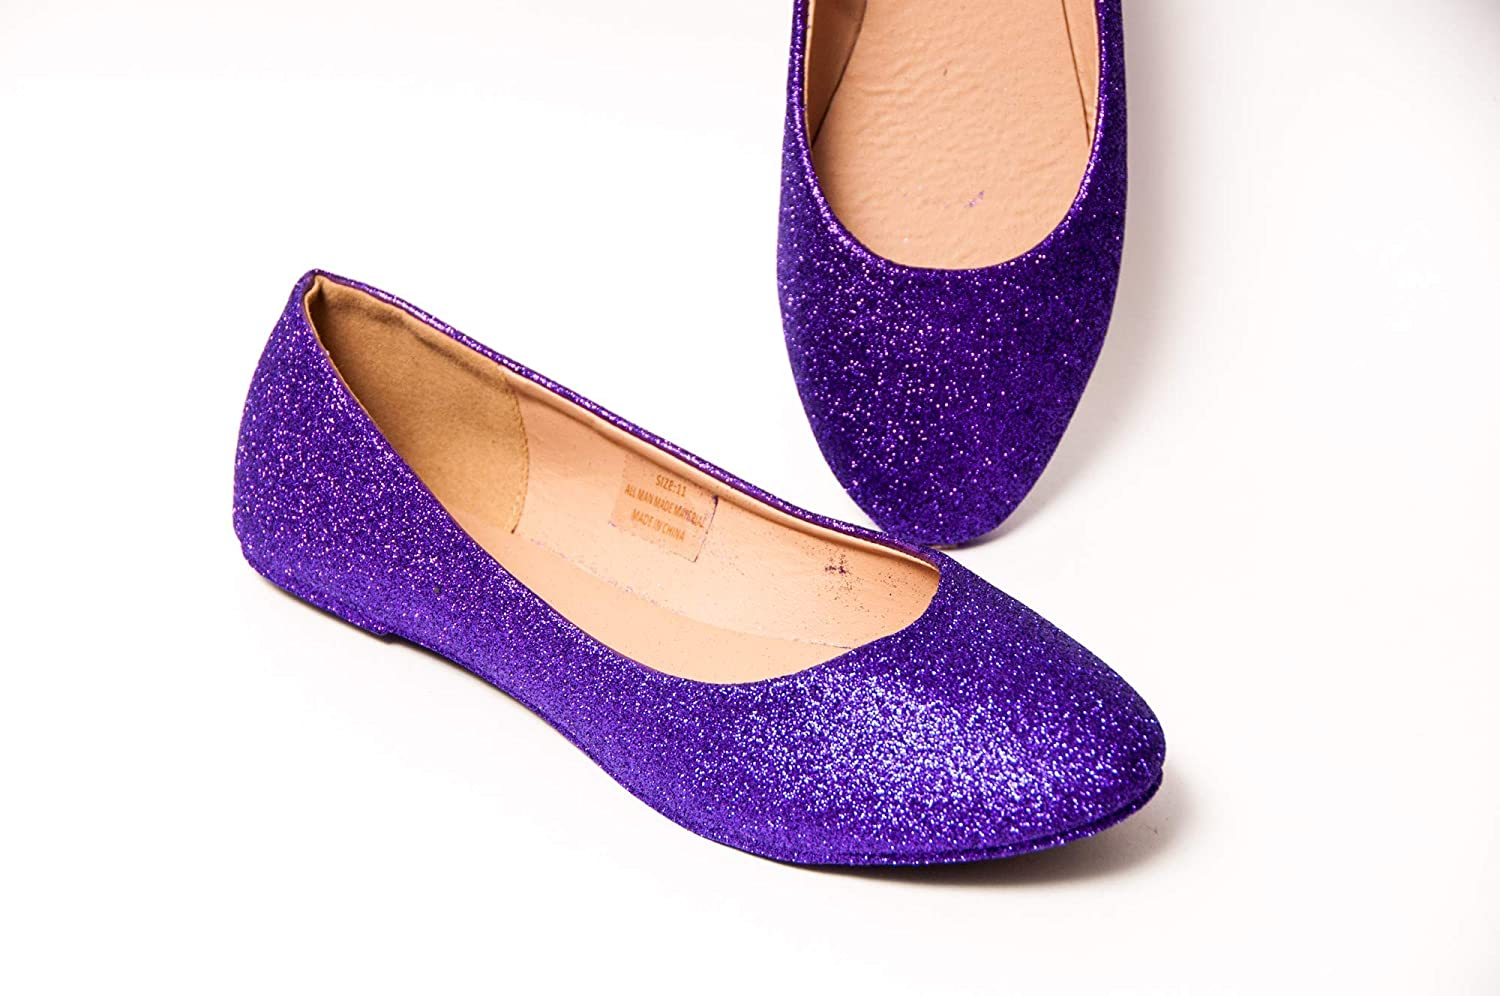 Womens Hand Glittered Passion Purple Glitter Ballet Flats Slip On Shoes by Princess Pumps